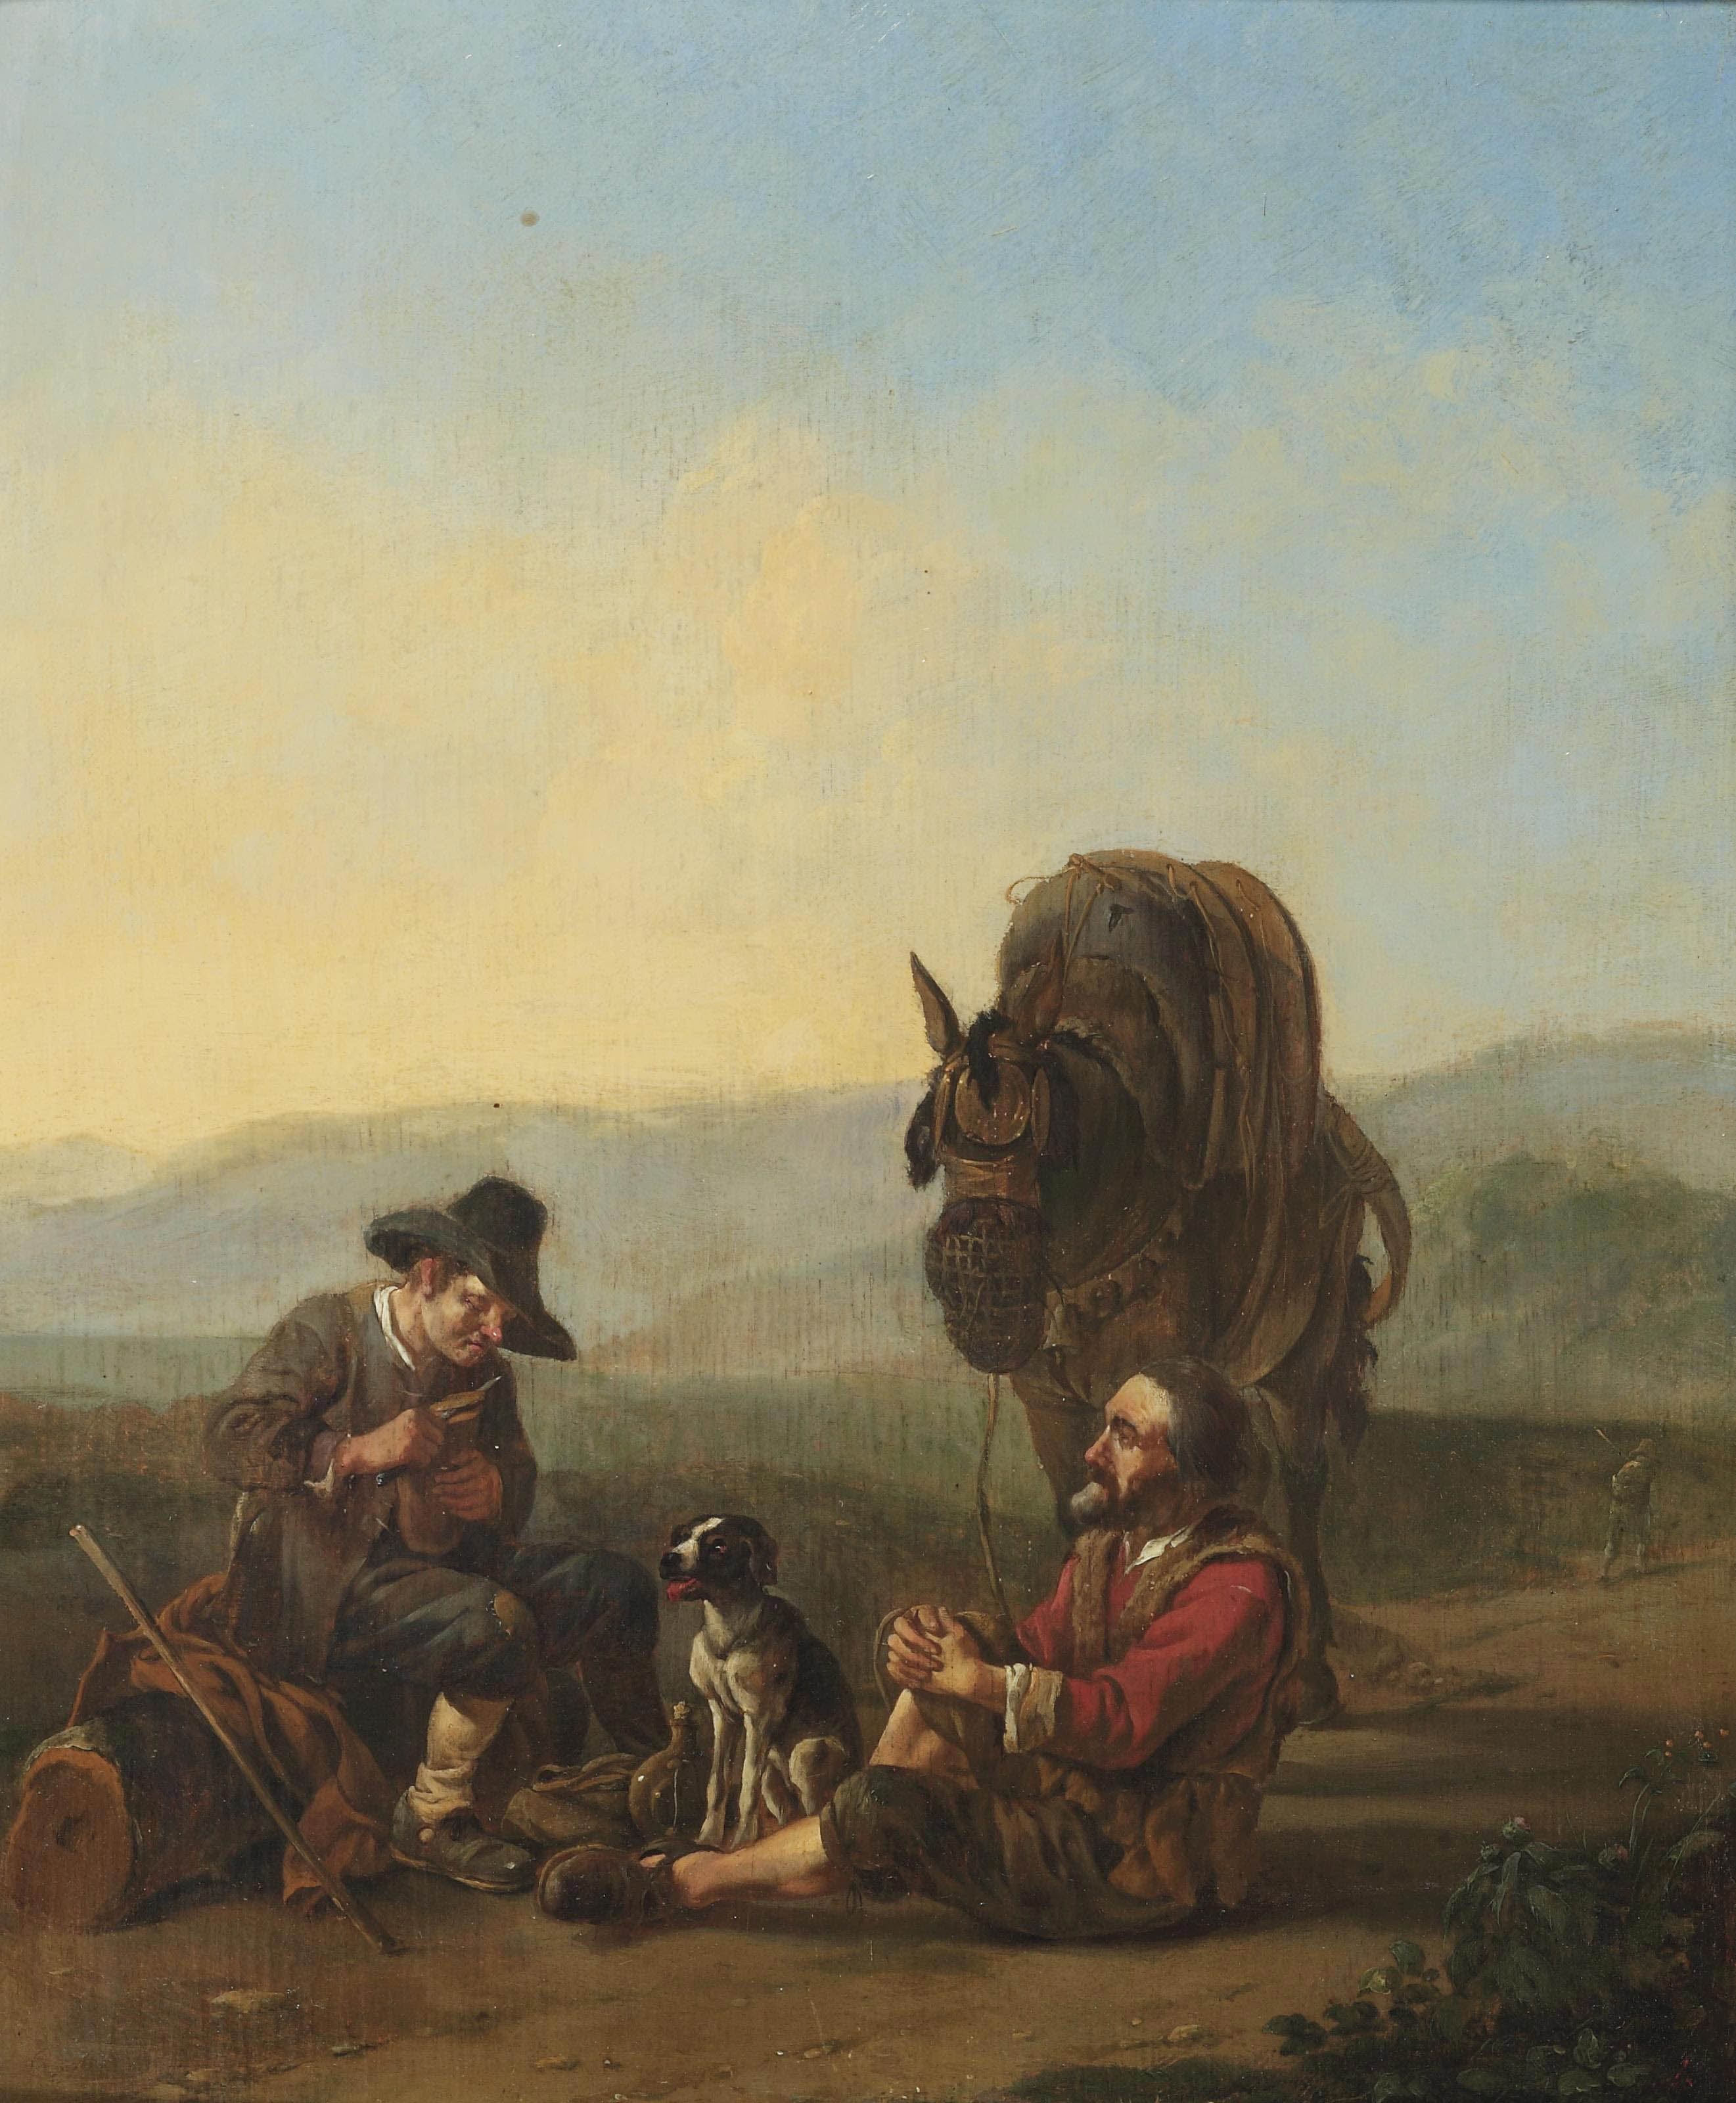 Two travellers reposing on a track in an Italianate landscape